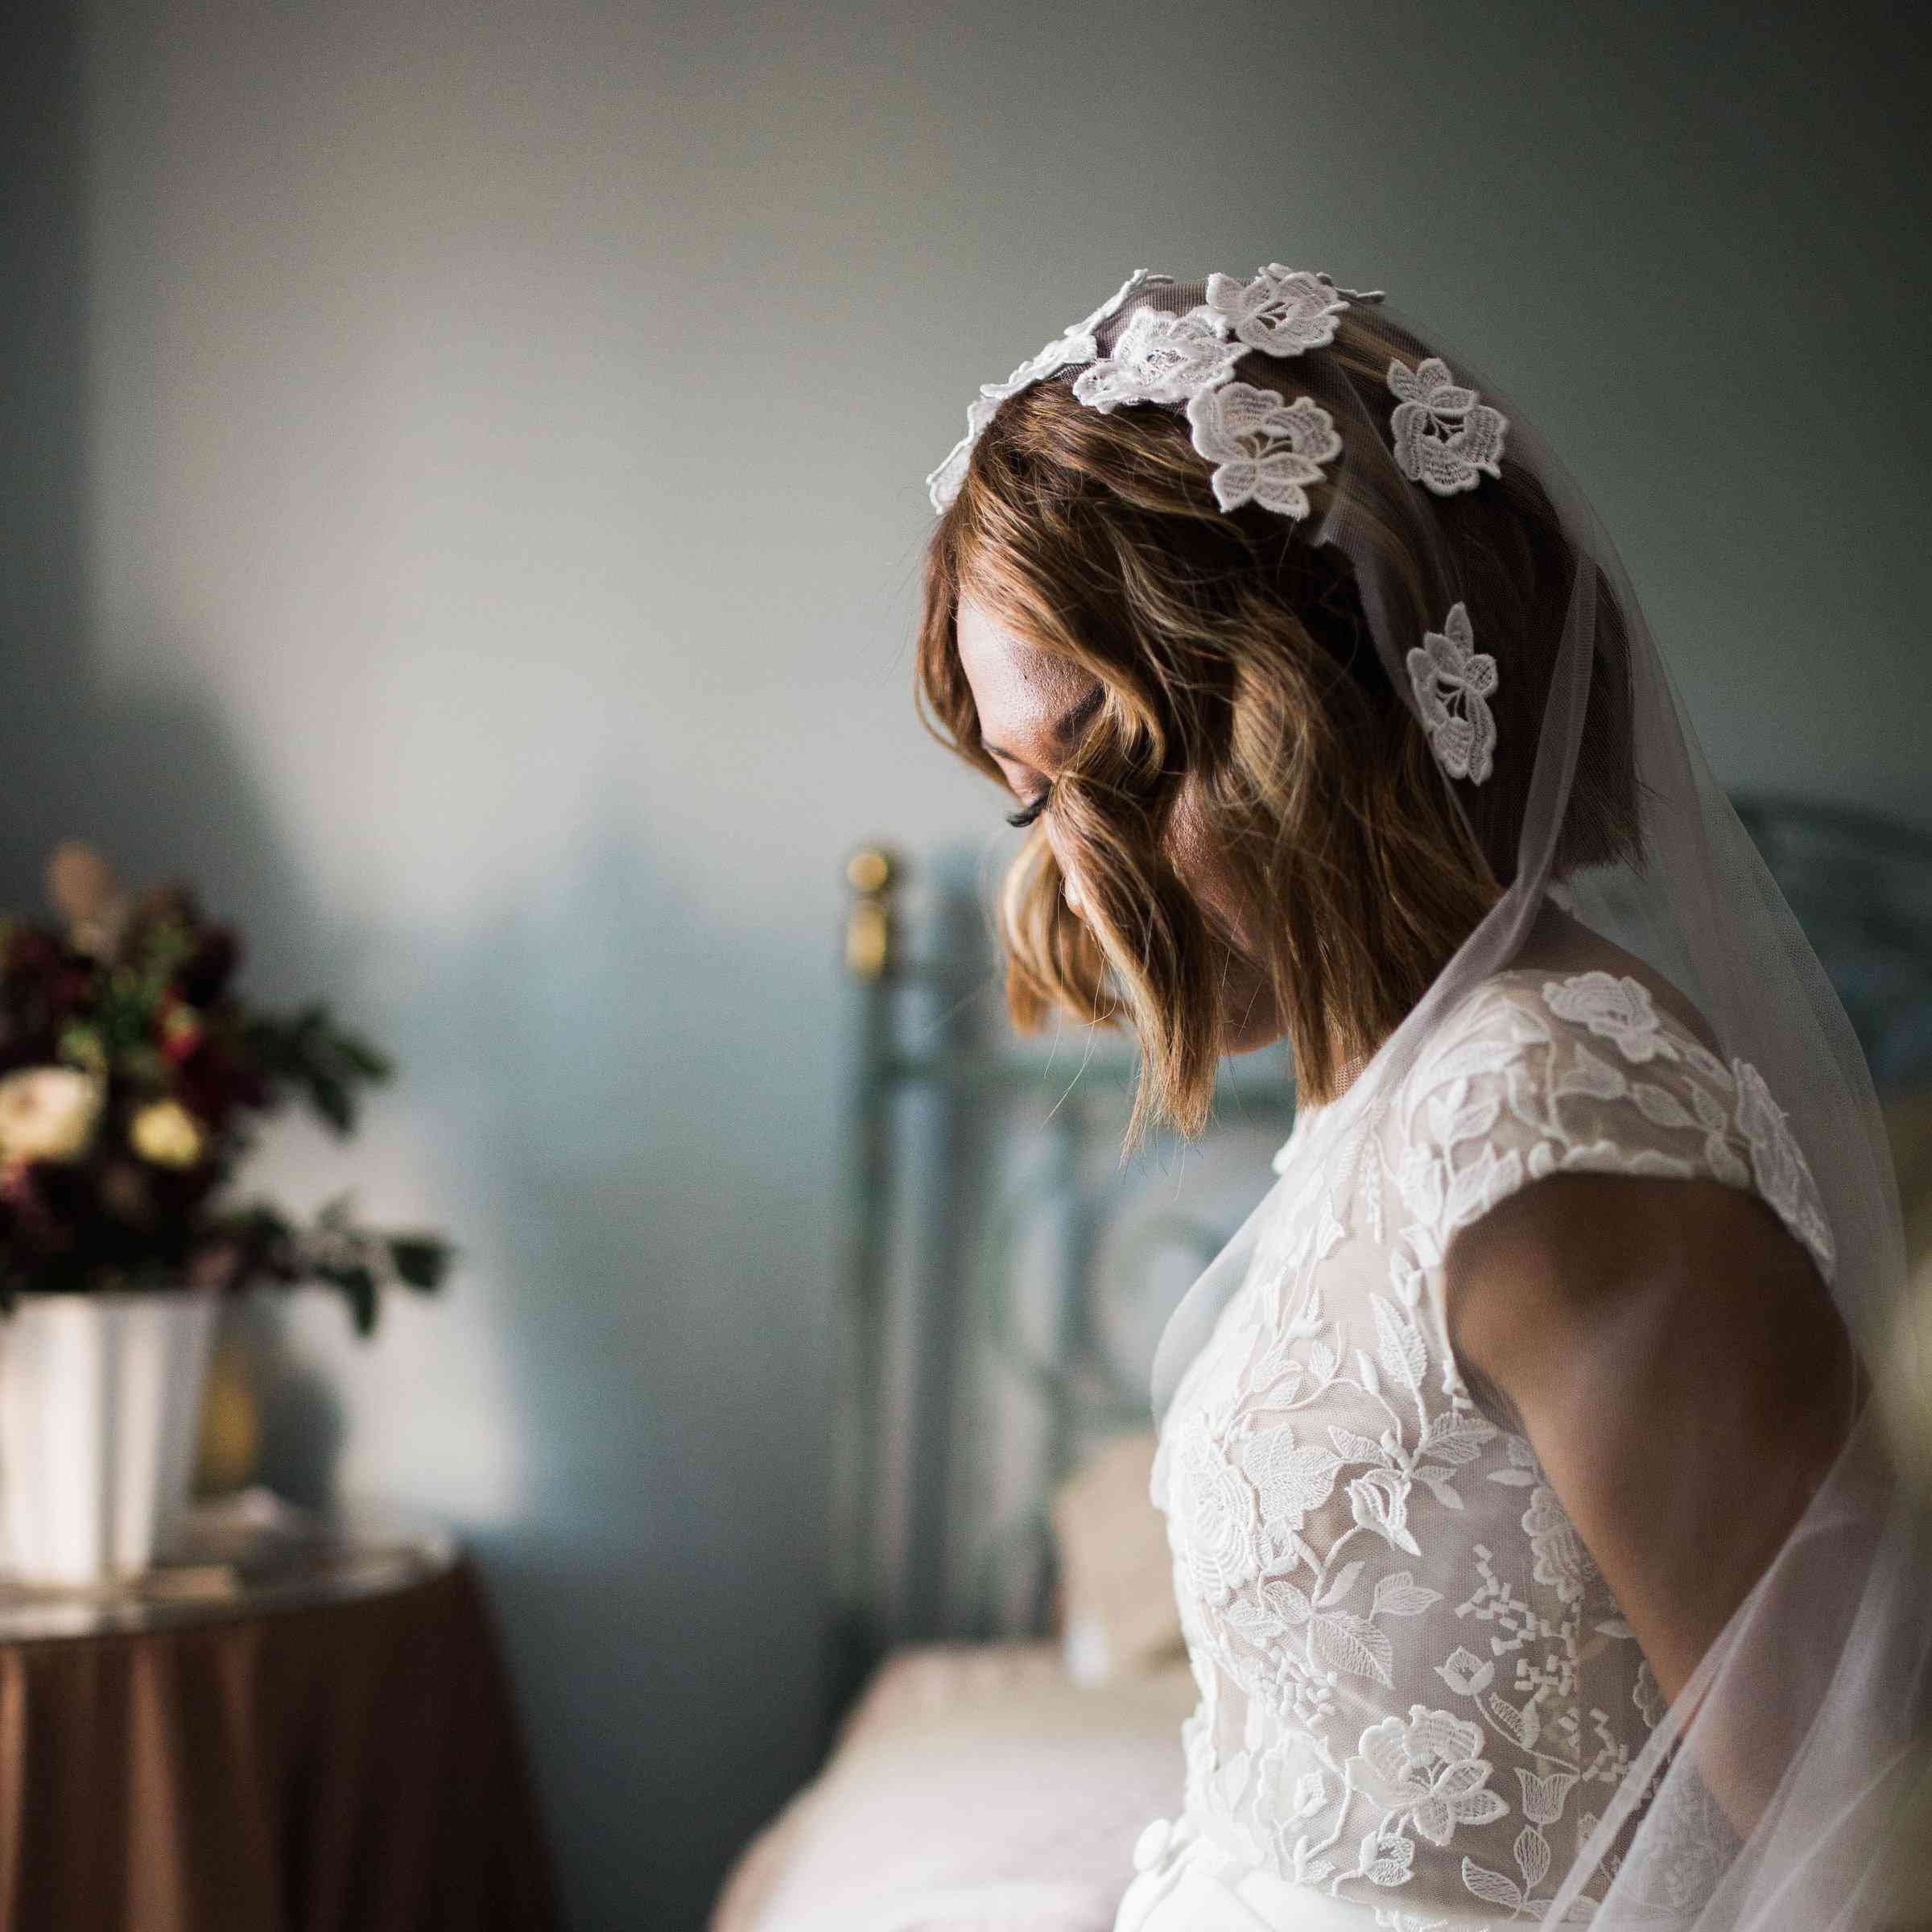 Tips For Hair Style For Wedding: Wedding Hair Trial: 9 Tips For Acing Your Appointment